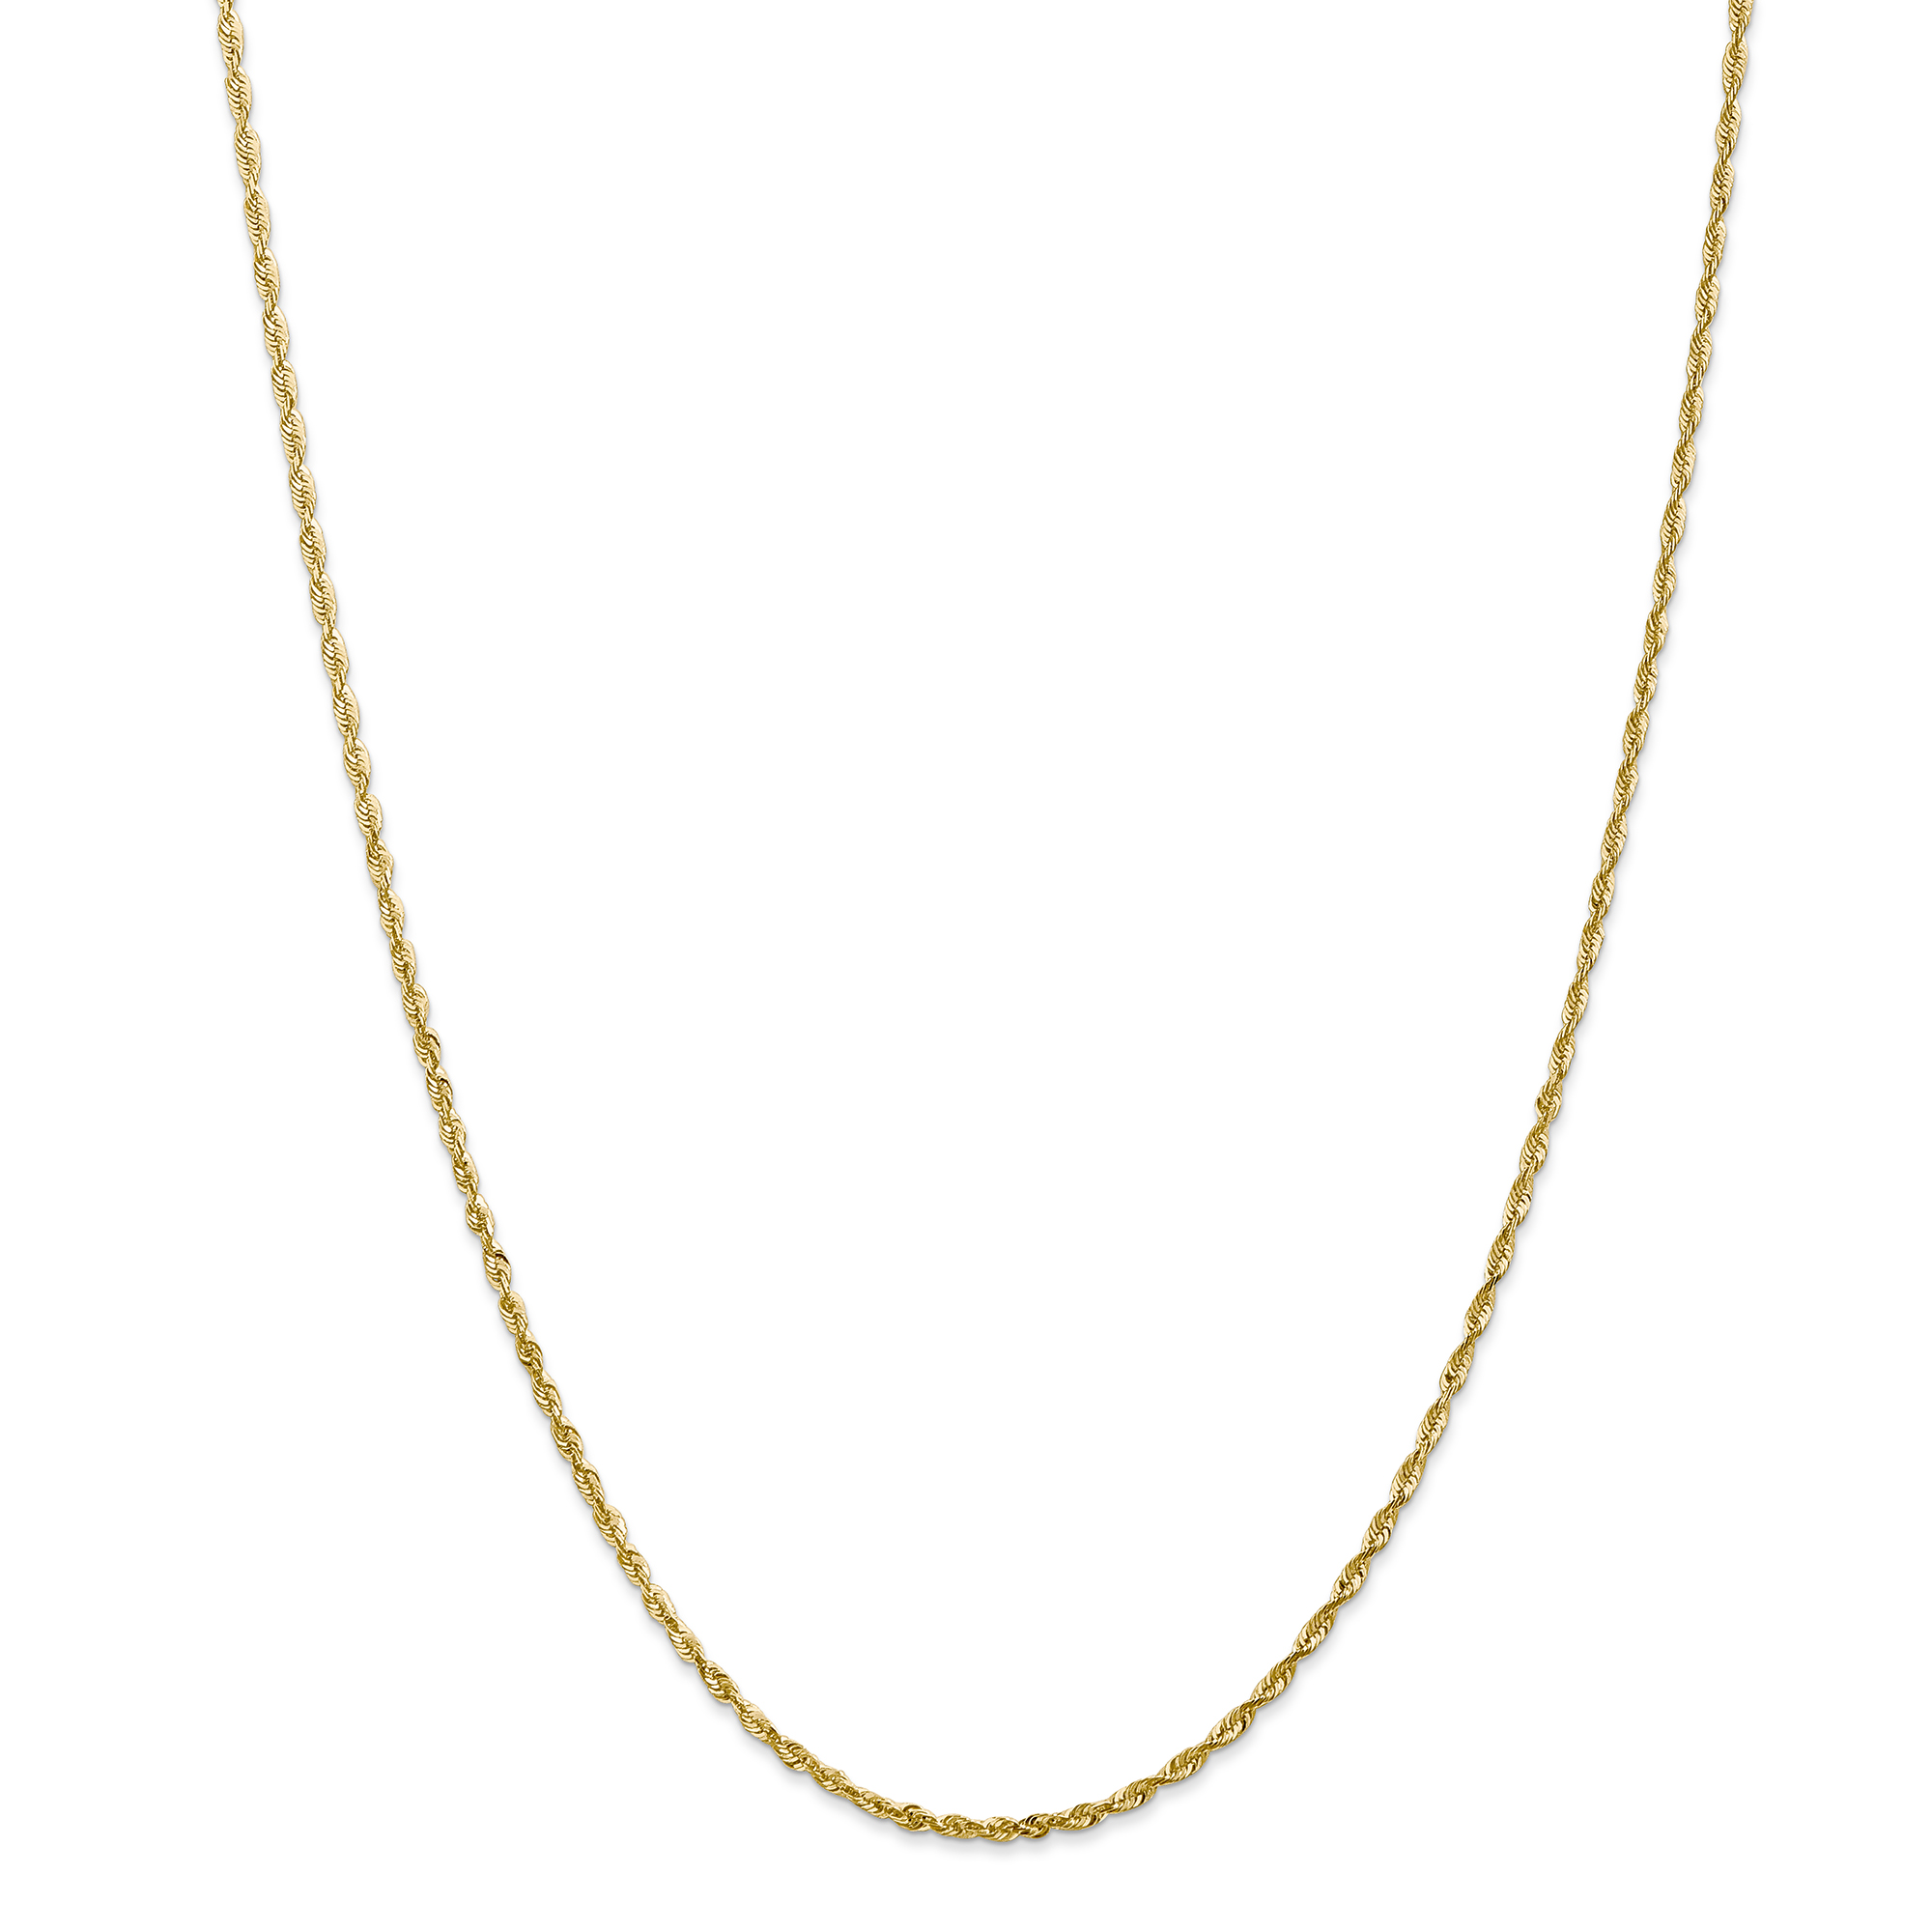 14K Yellow Gold 2.0mm Diamond Cut Extra-Light Rope Chain 24 Inch - image 5 of 5